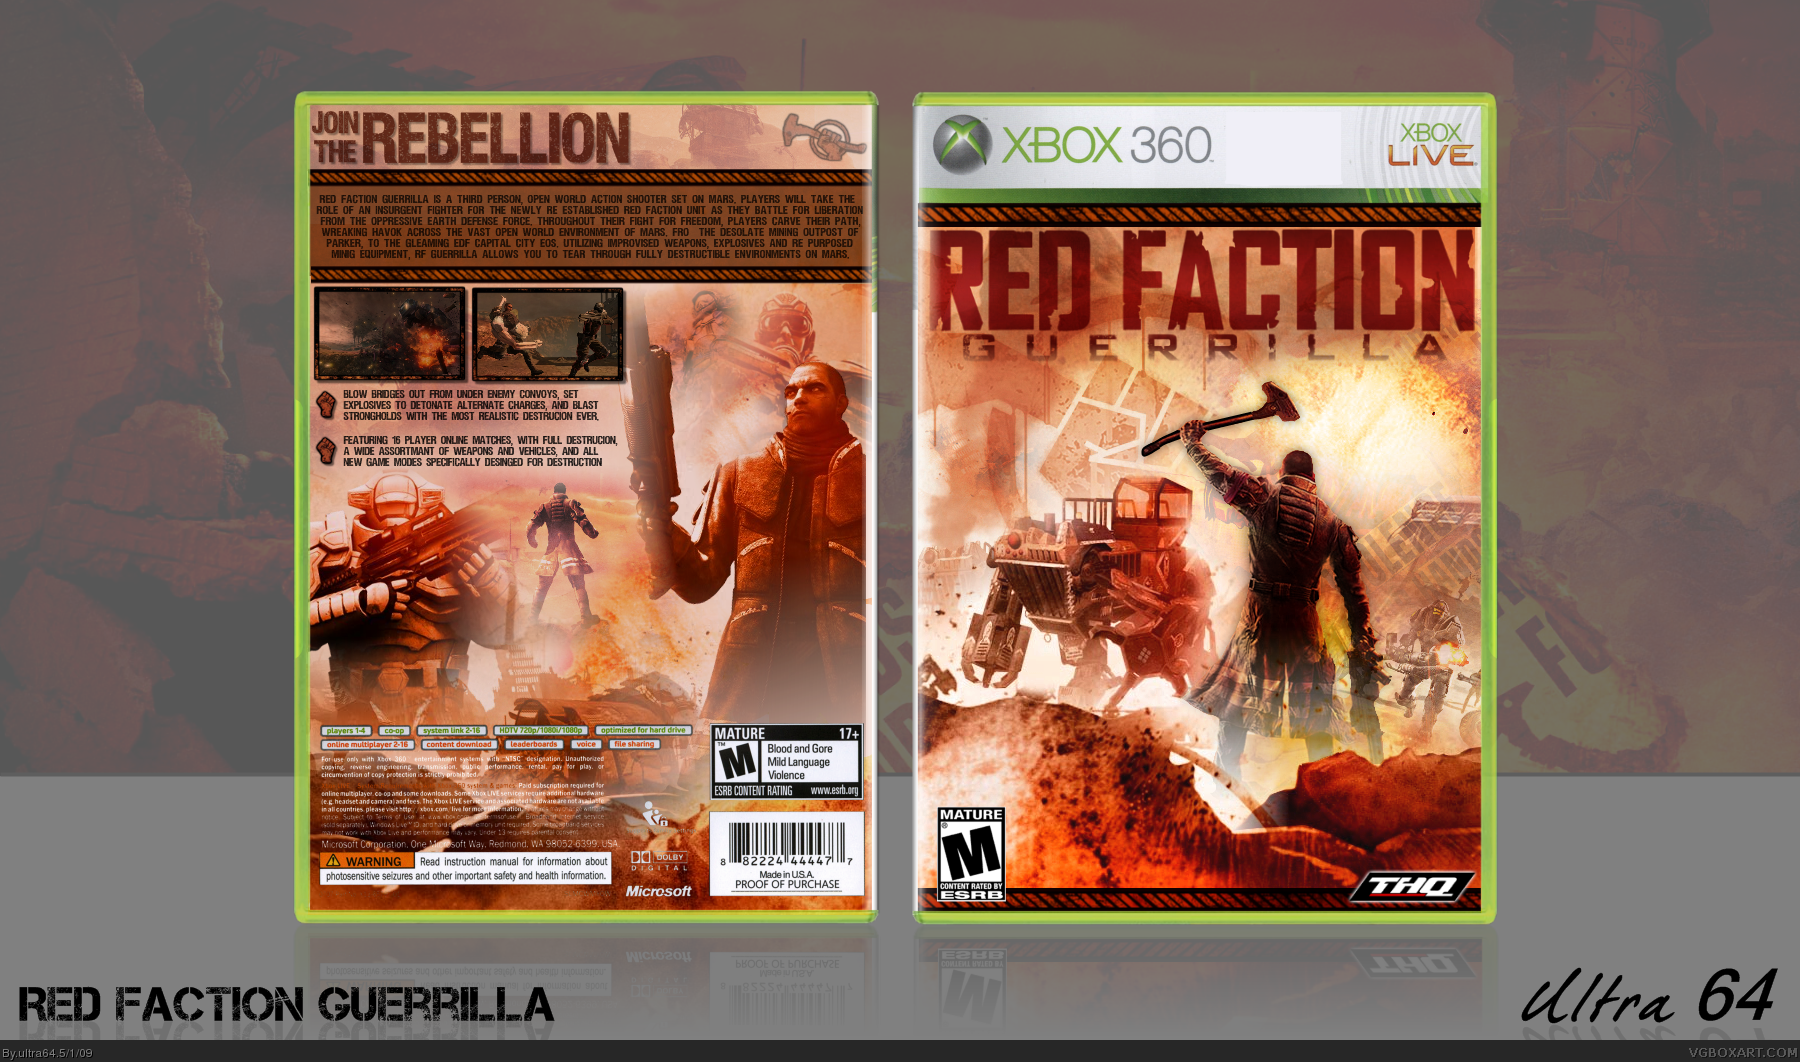 Red faction guerrilla porn xxx naked scenes